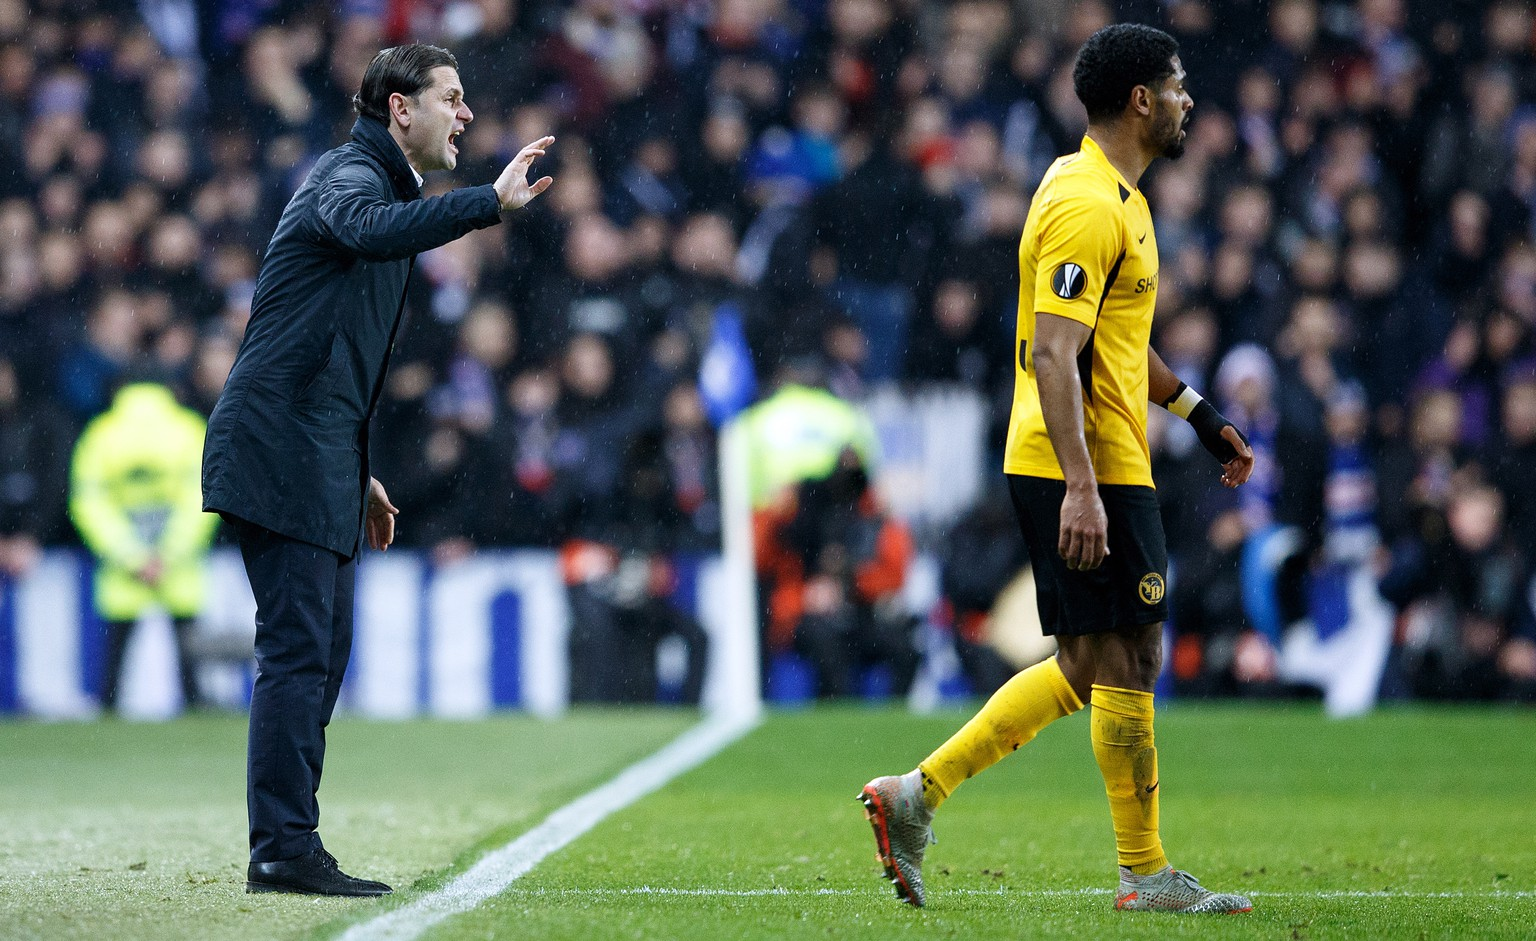 epa08067098 BSC Young Boys manager Gerardo Seoane Castro (L) reacts during the UEFA Europa League match Rangers v BSC Young Boys in Glasgow, Britain, 12 December 2019.  EPA/ROBERT PERRY